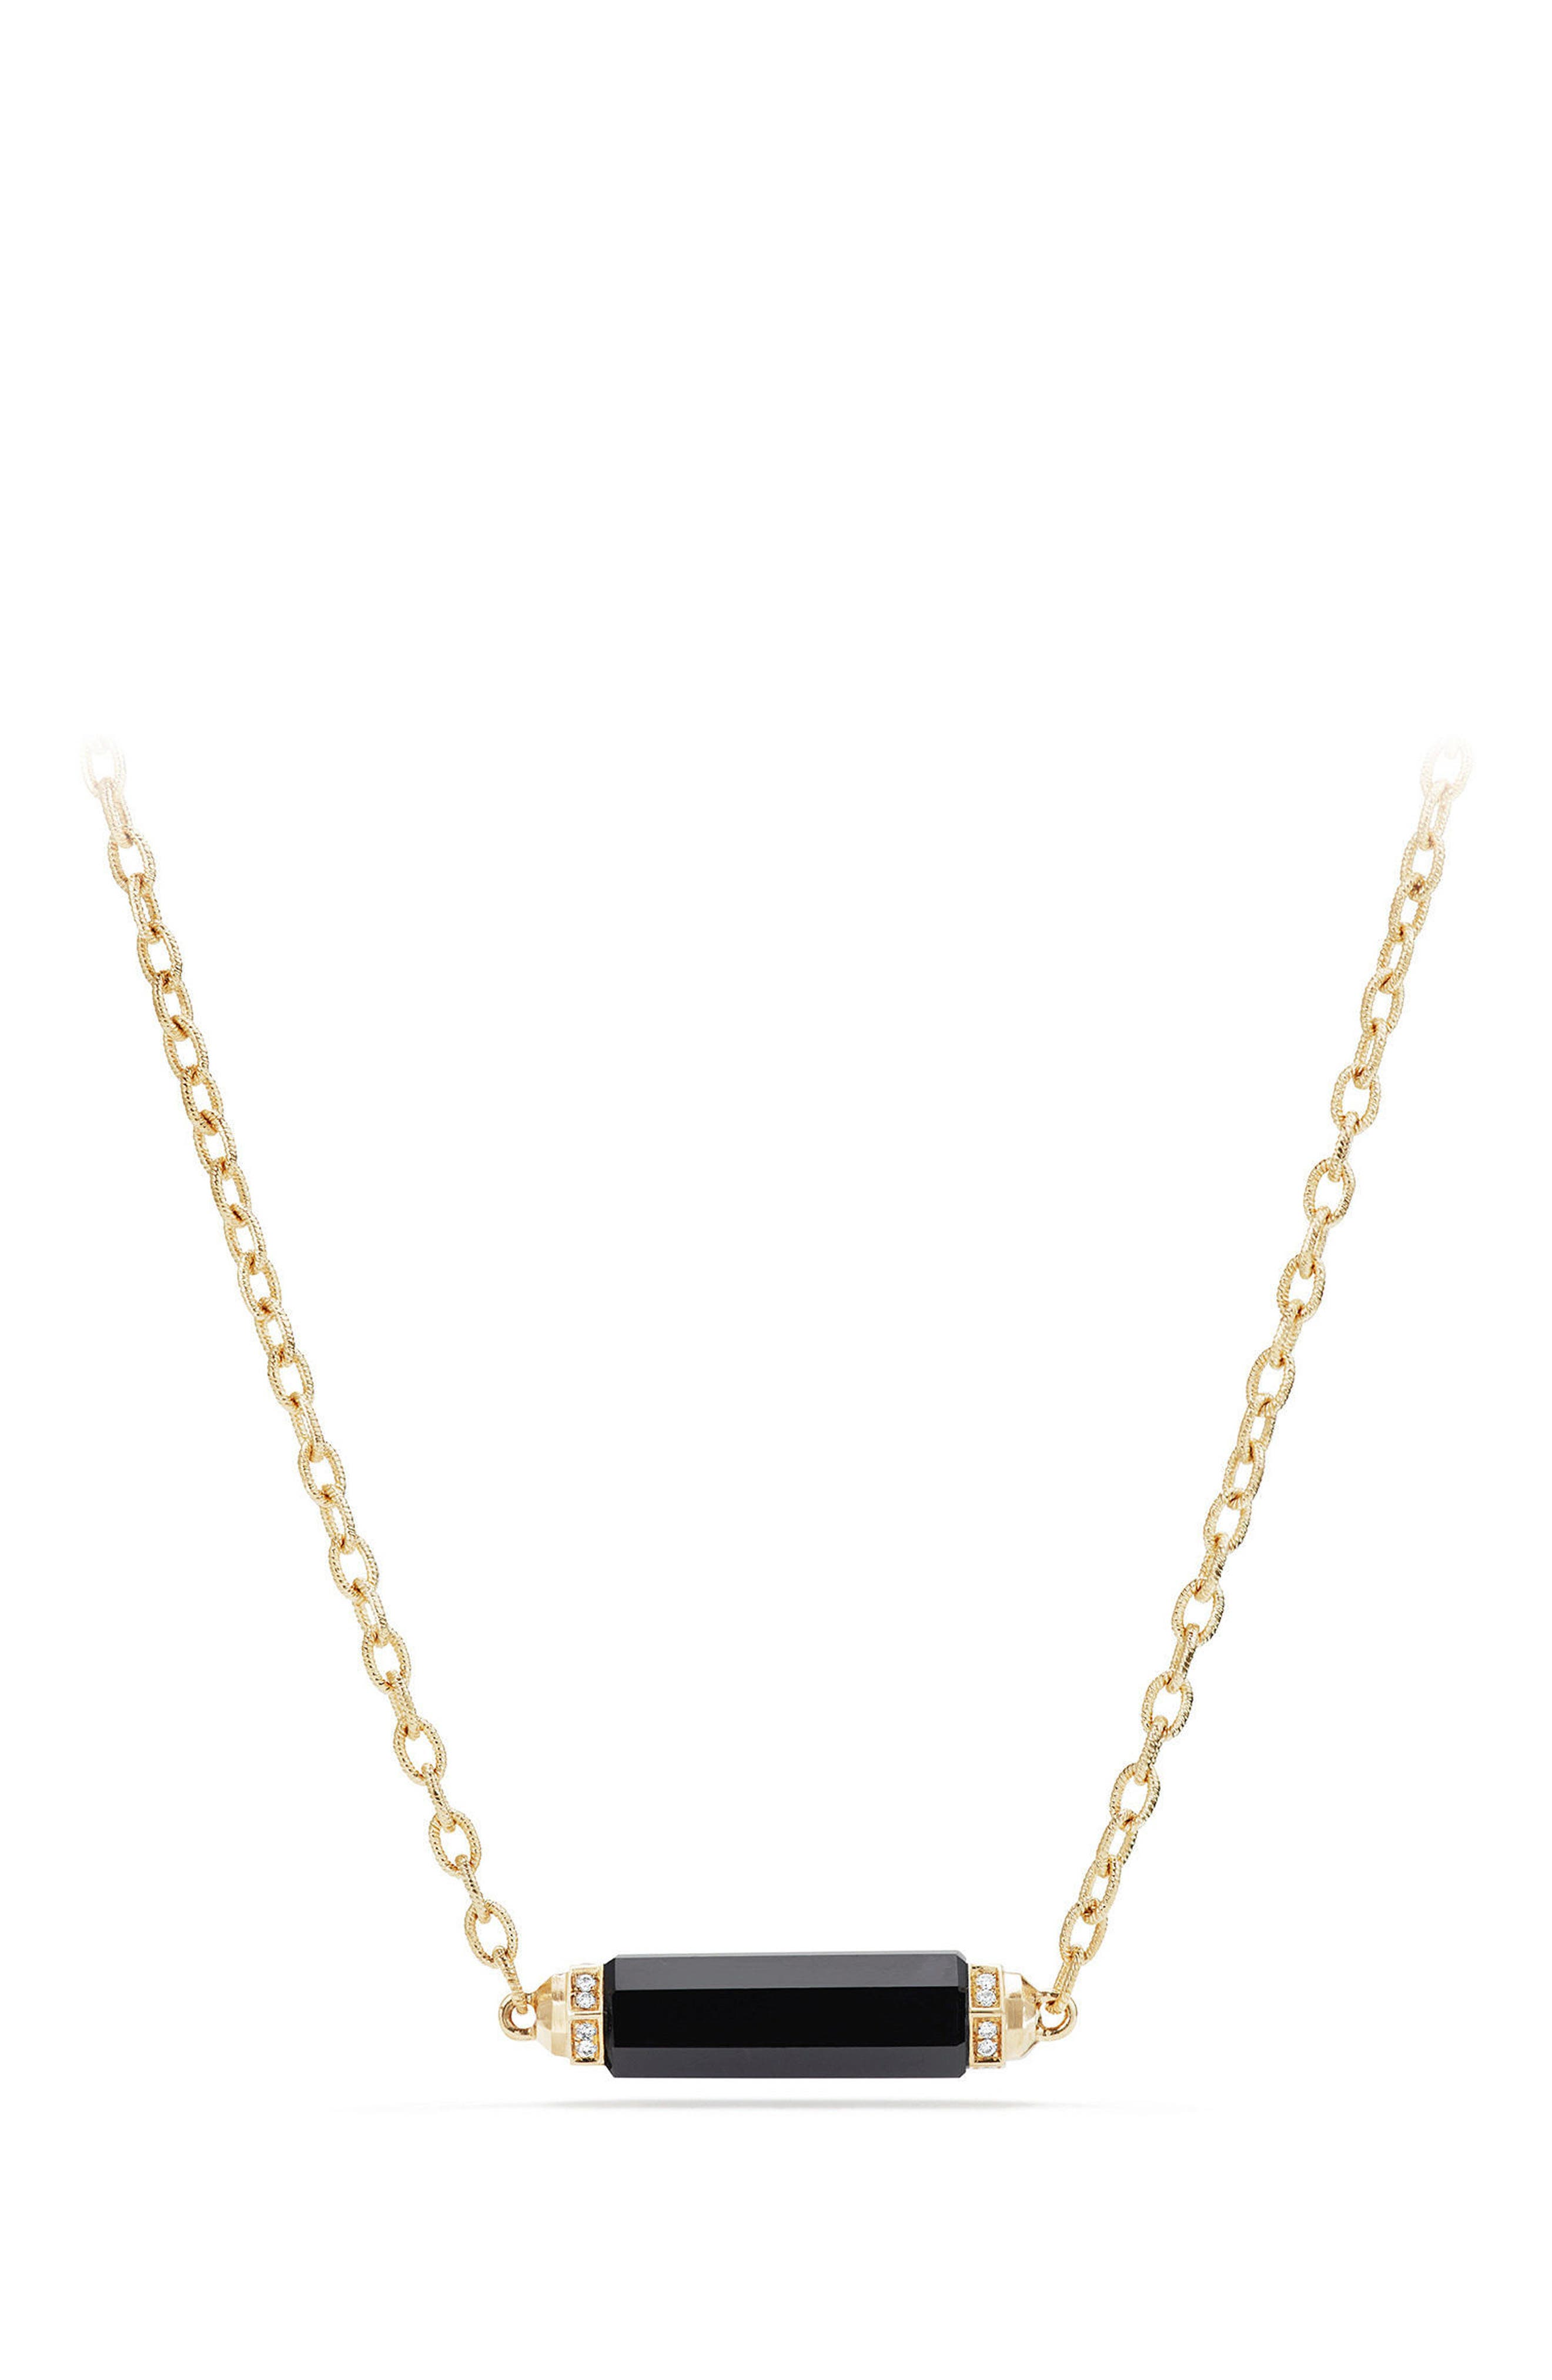 Barrels Single Station Necklace with Diamonds in 18K Gold,                         Main,                         color, BLACK ONYX